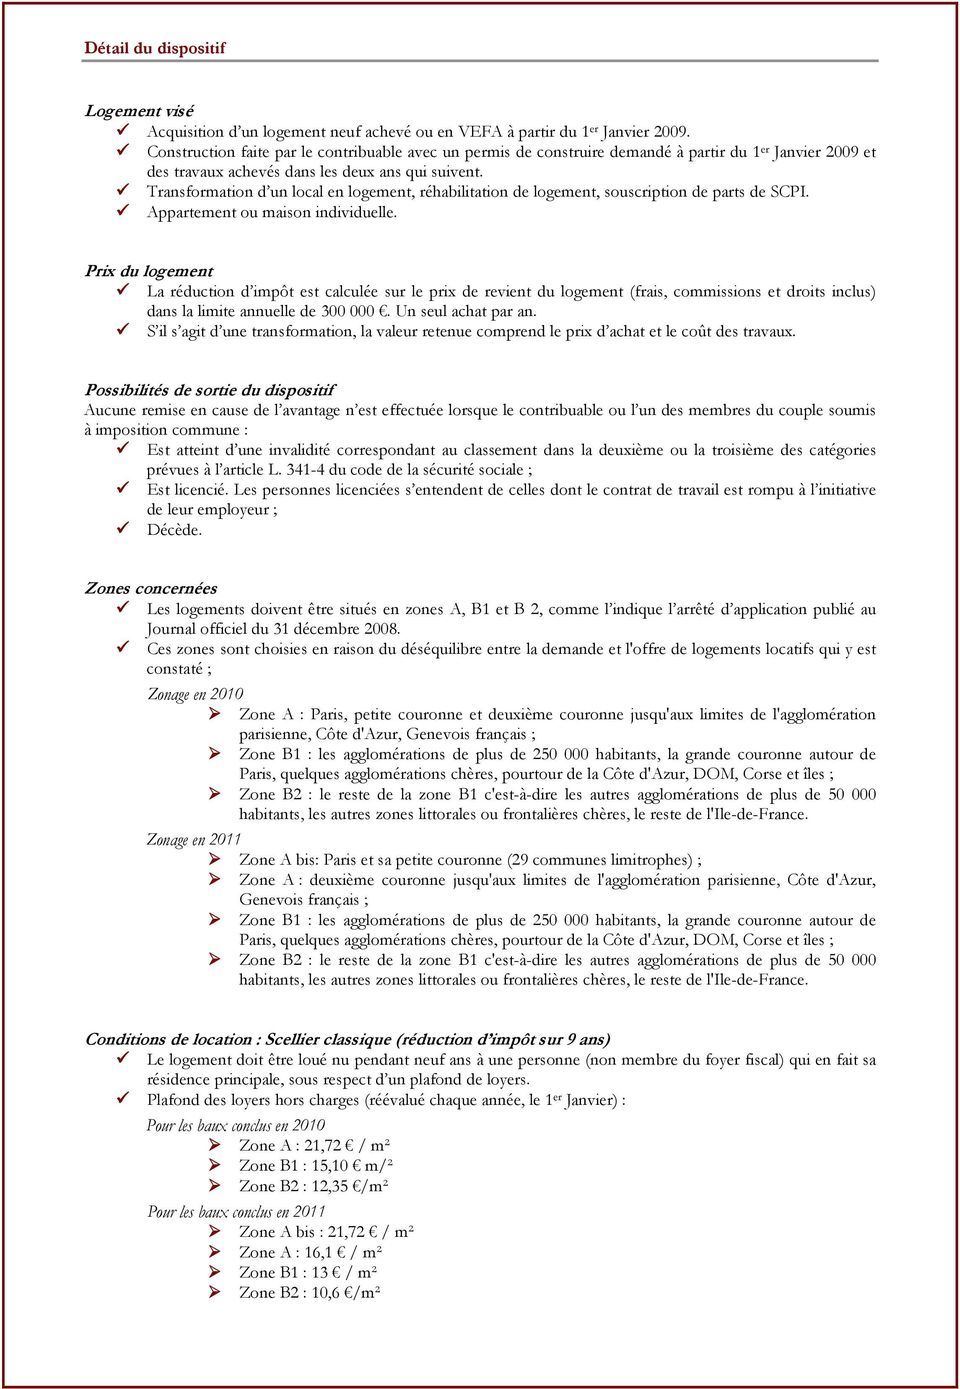 Transformation d un local en logement, réhabilitation de logement, souscription de parts de SCPI. Appartement ou maison individuelle.